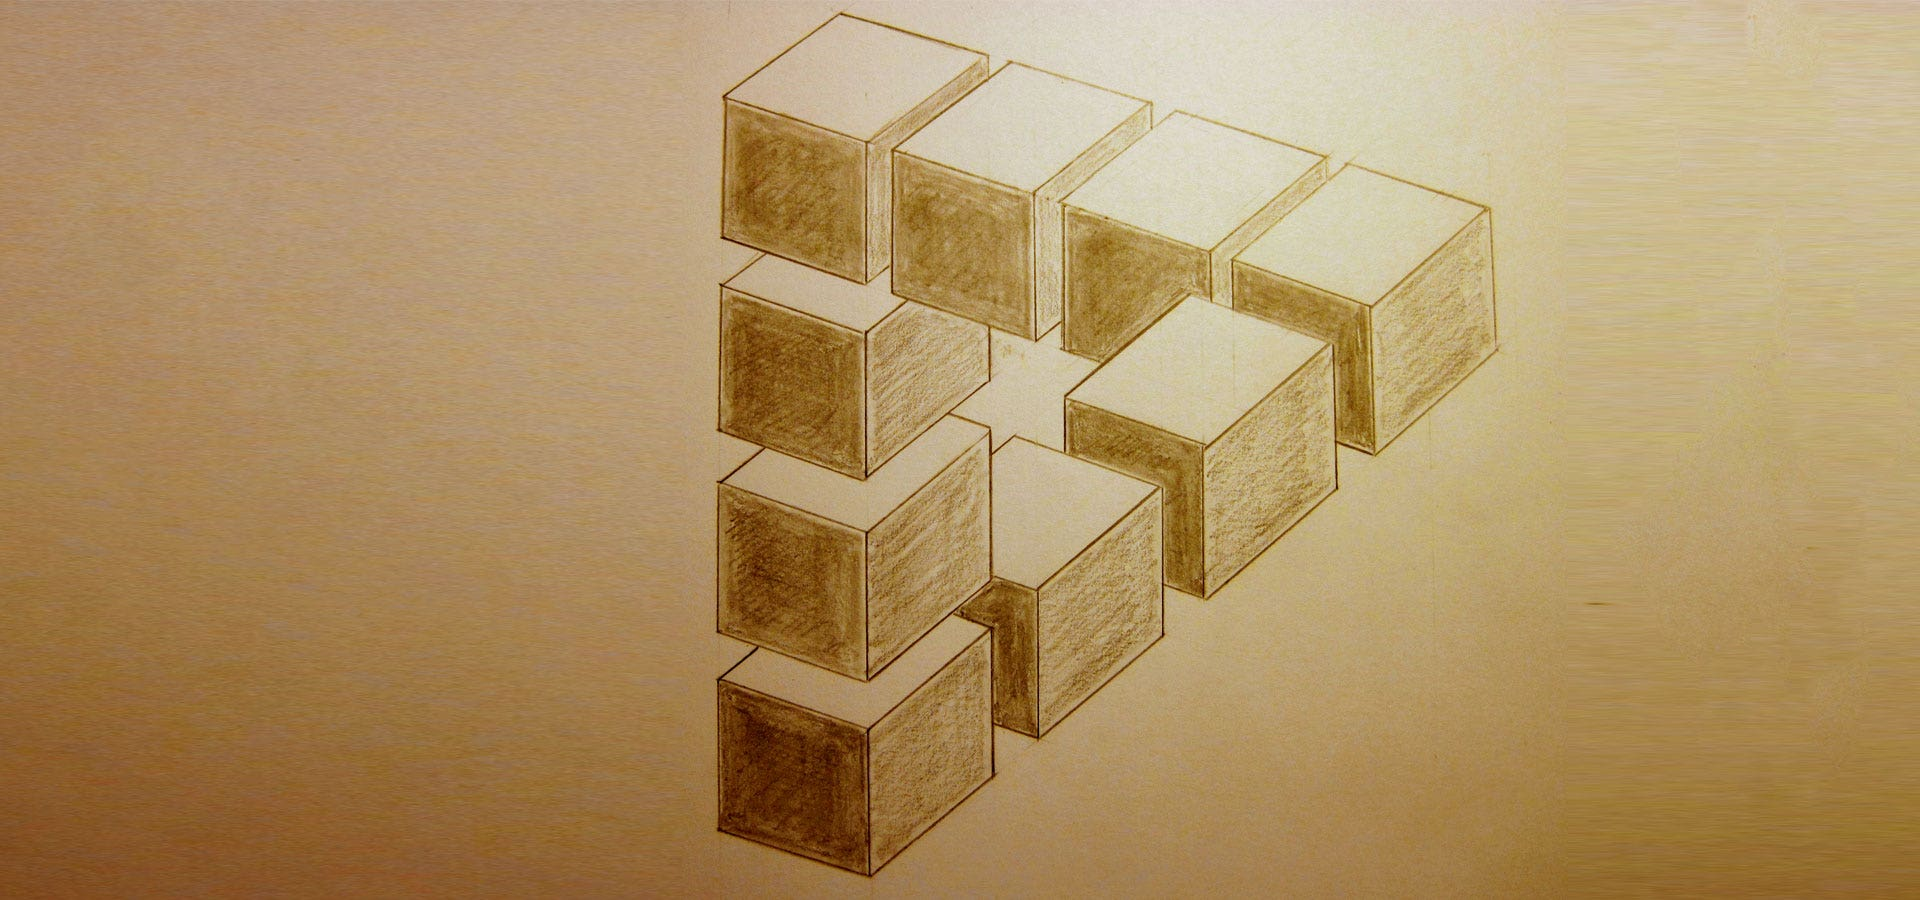 19 Examples Of Optical Illusion Drawings Free Premium